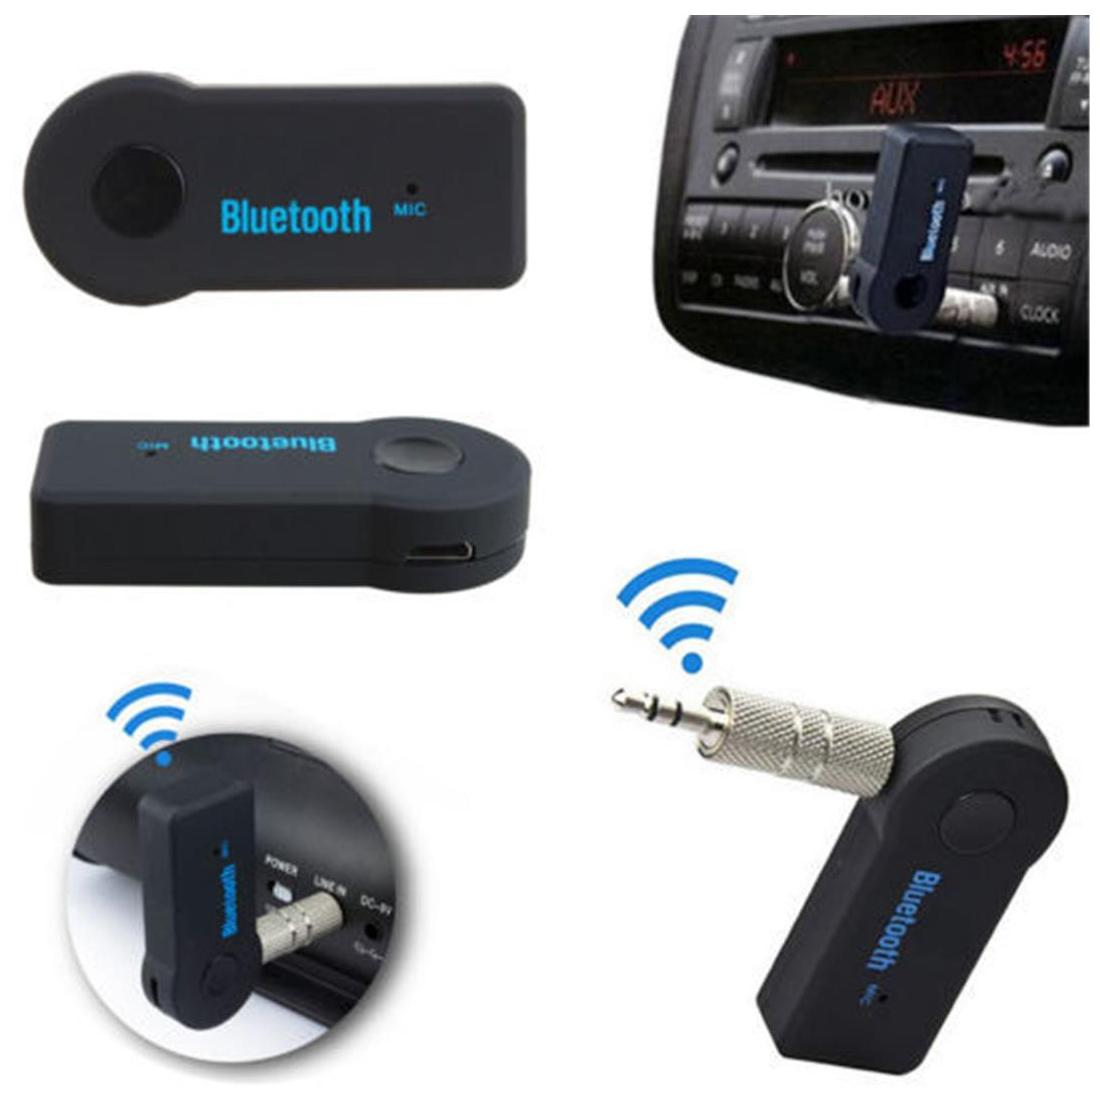 Bluetooth 3.0 Handsfree Car Kit Bluetooth Music Receiver Adapter With Built - In Mic and 3.5 Mm Aux Output For Car Audio System I Phone Samsung and Other Smartphones.